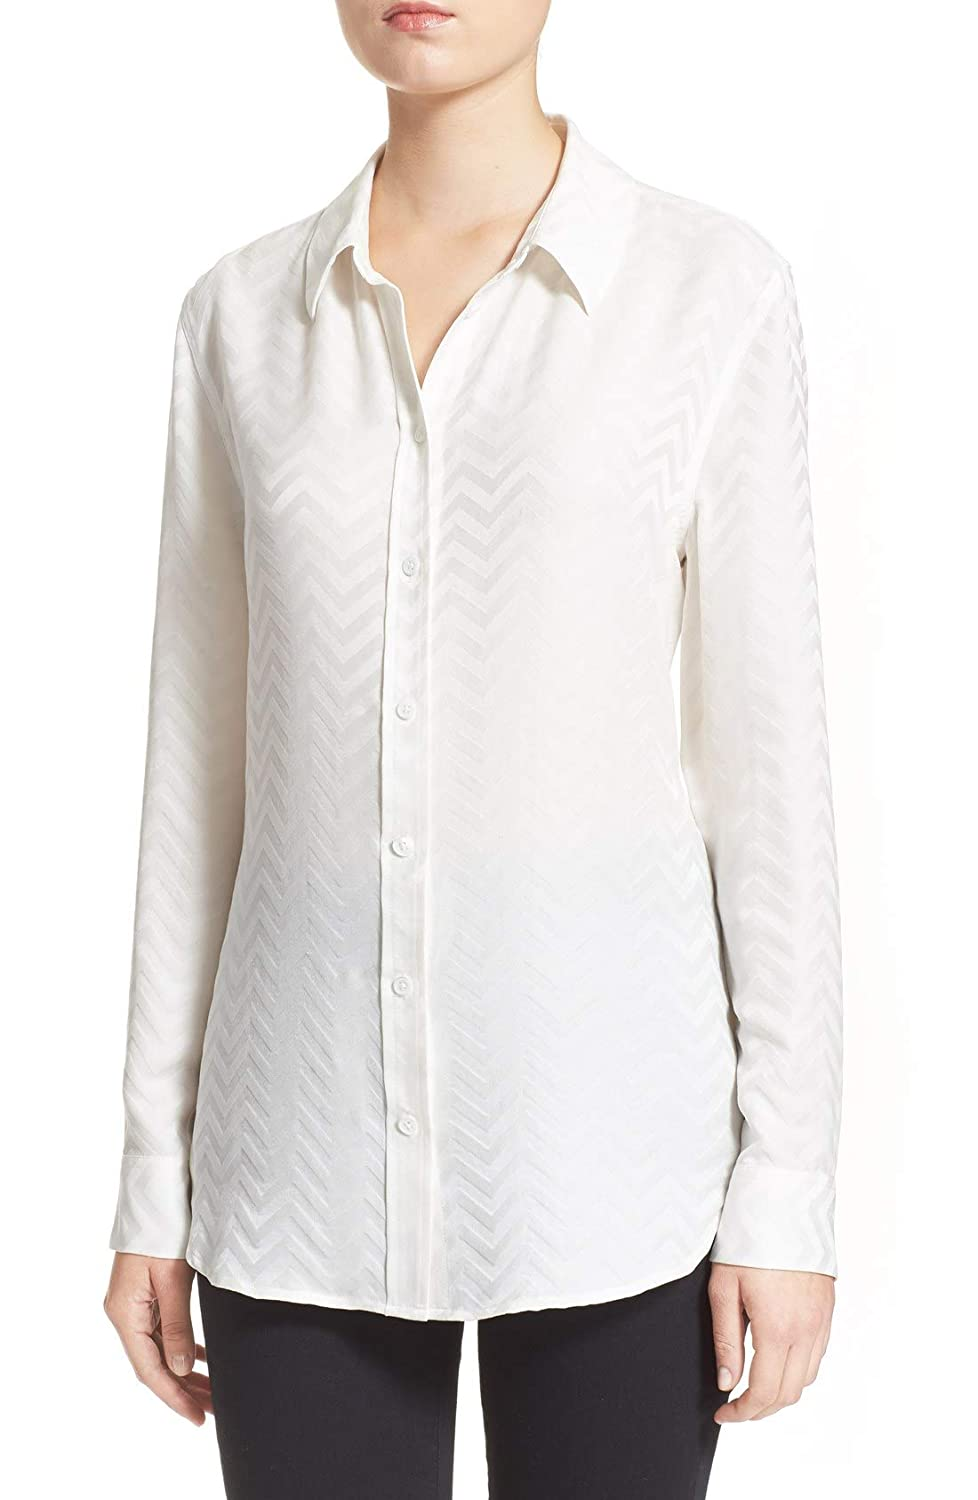 dcceb8c3 Amazon.com: Equipment Silk Embossed Chevron-Print Reese White Button Up  Shirt Blouse: Clothing